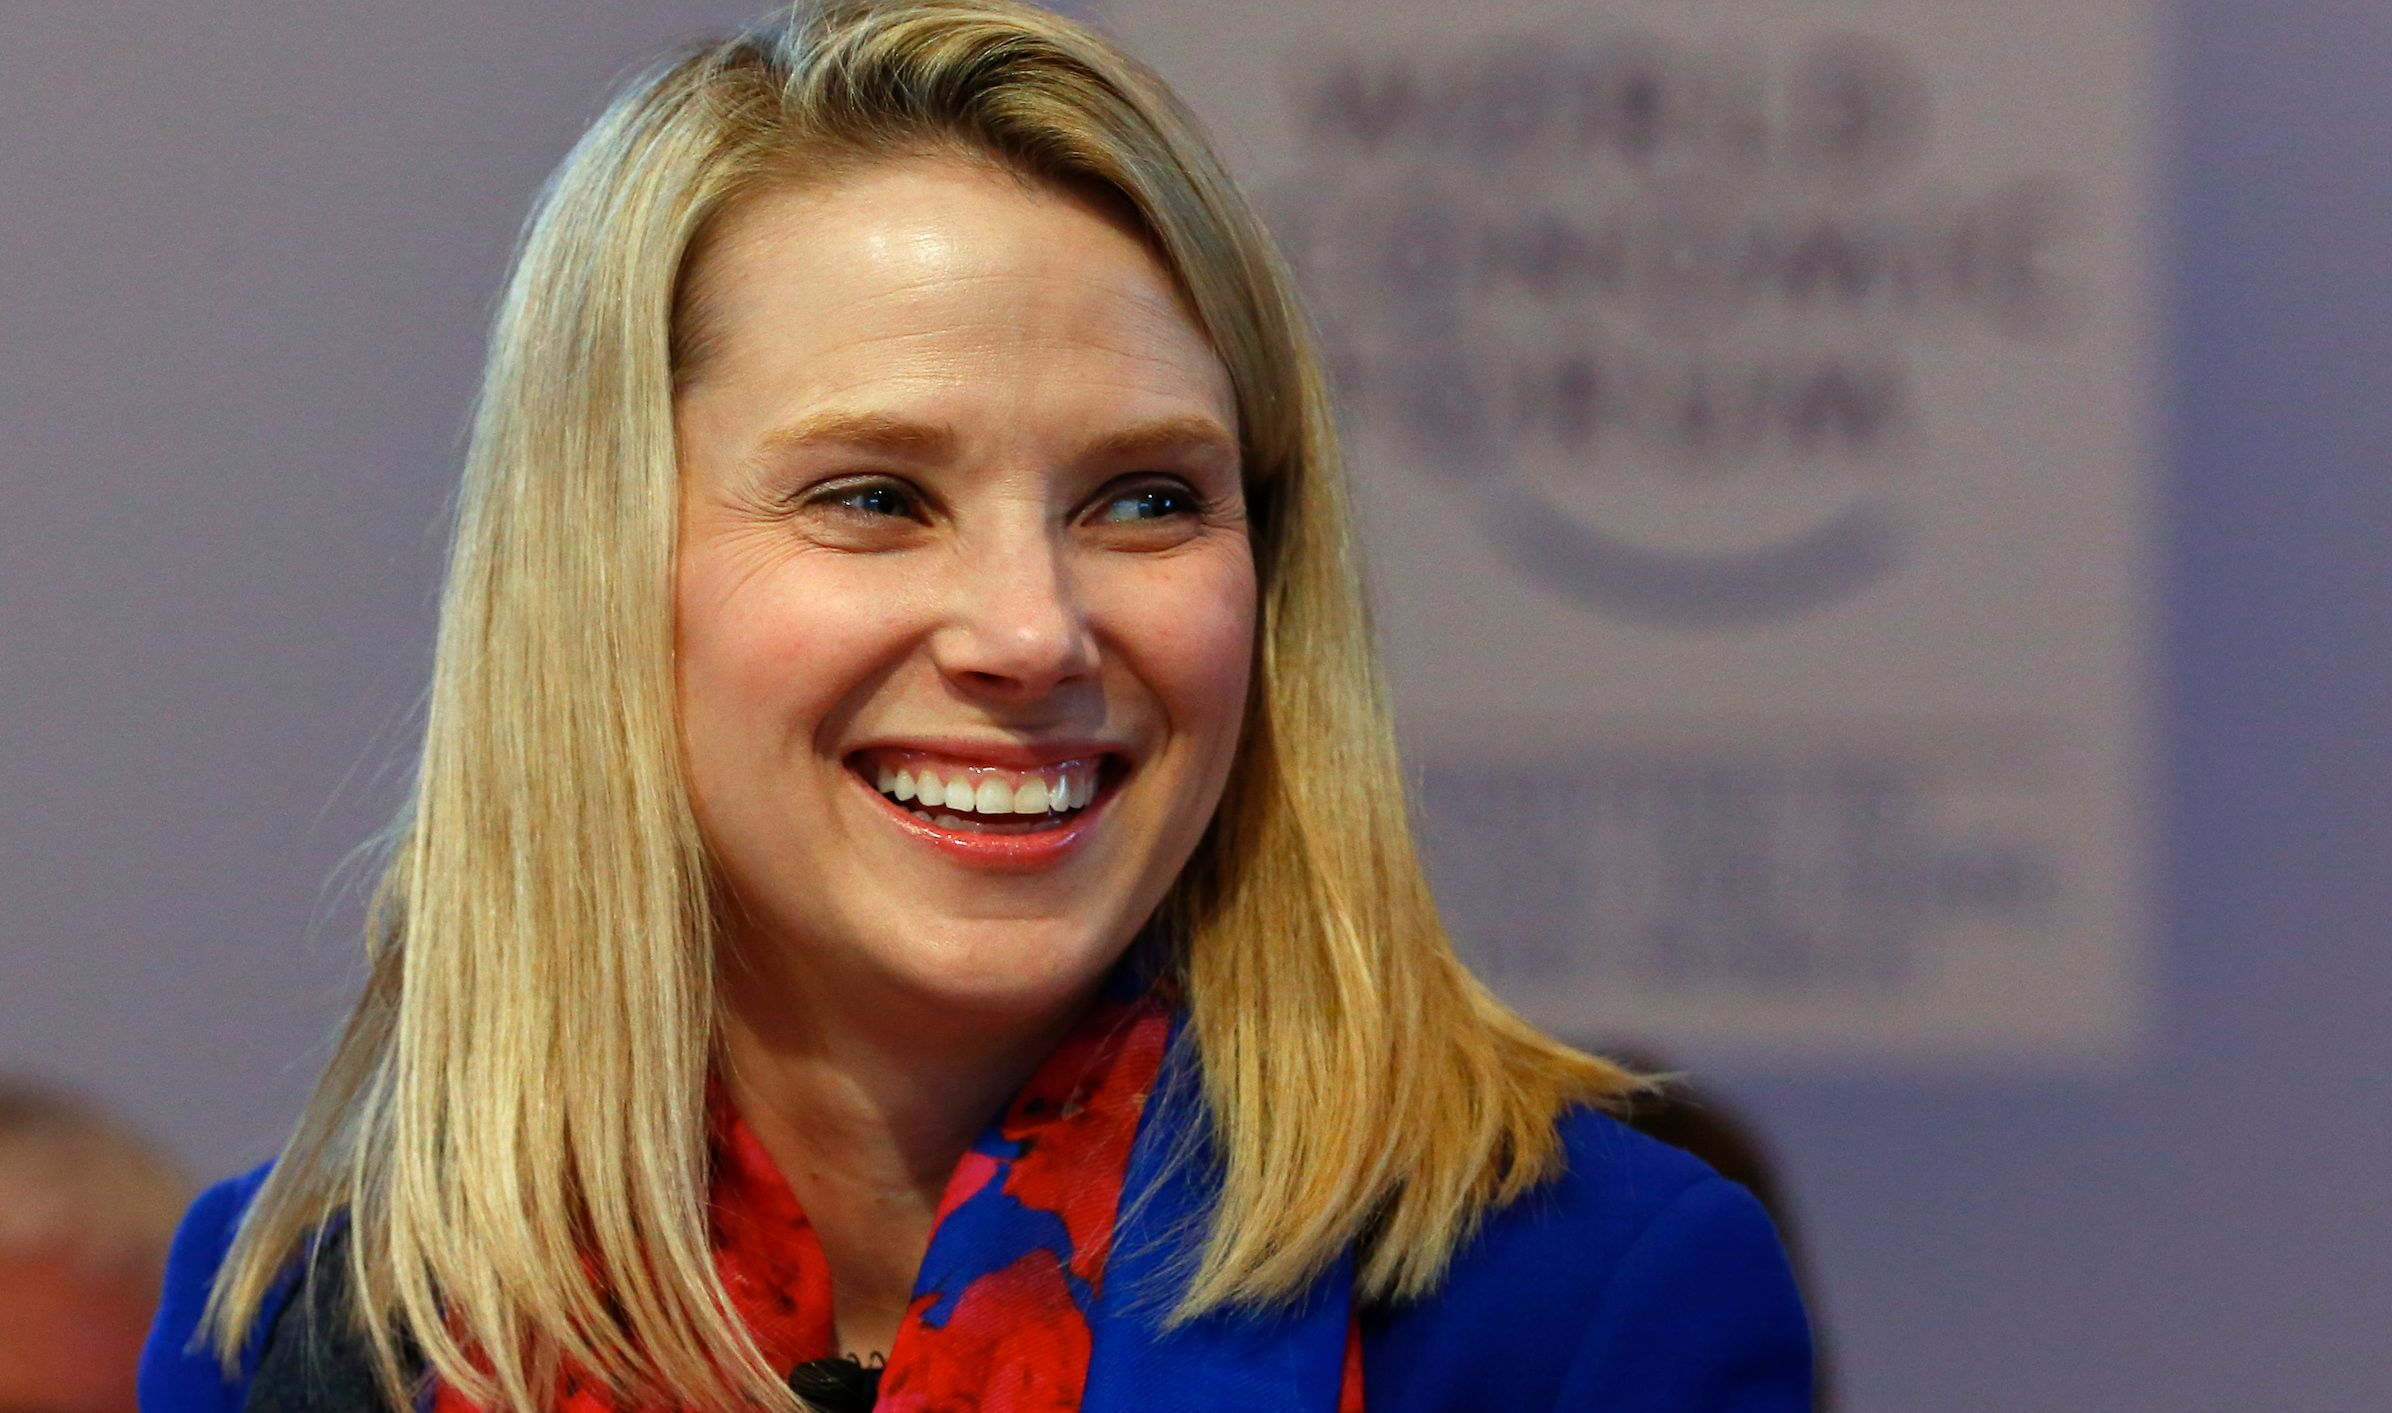 """Yahoo CEO Marissa Mayer smiles before the session """"In Tech We Trust"""" in the Swiss mountain resort of Davos January 22, 2015. More than 1,500 business leaders and 40 heads of state or government attend the Jan. 21-24 meeting of the World Economic Forum (WEF) to network and discuss big themes, from the price of oil to the future of the Internet. This year they are meeting in the midst of upheaval, with security forces on heightened alert after attacks in Paris, the European Central Bank considering a radical government bond-buying programme and the safe-haven Swiss franc rocketing.                                         REUTERS/Ruben Sprich (SWITZERLAND  - Tags: BUSINESS POLITICS)   - RTR4MHVI"""